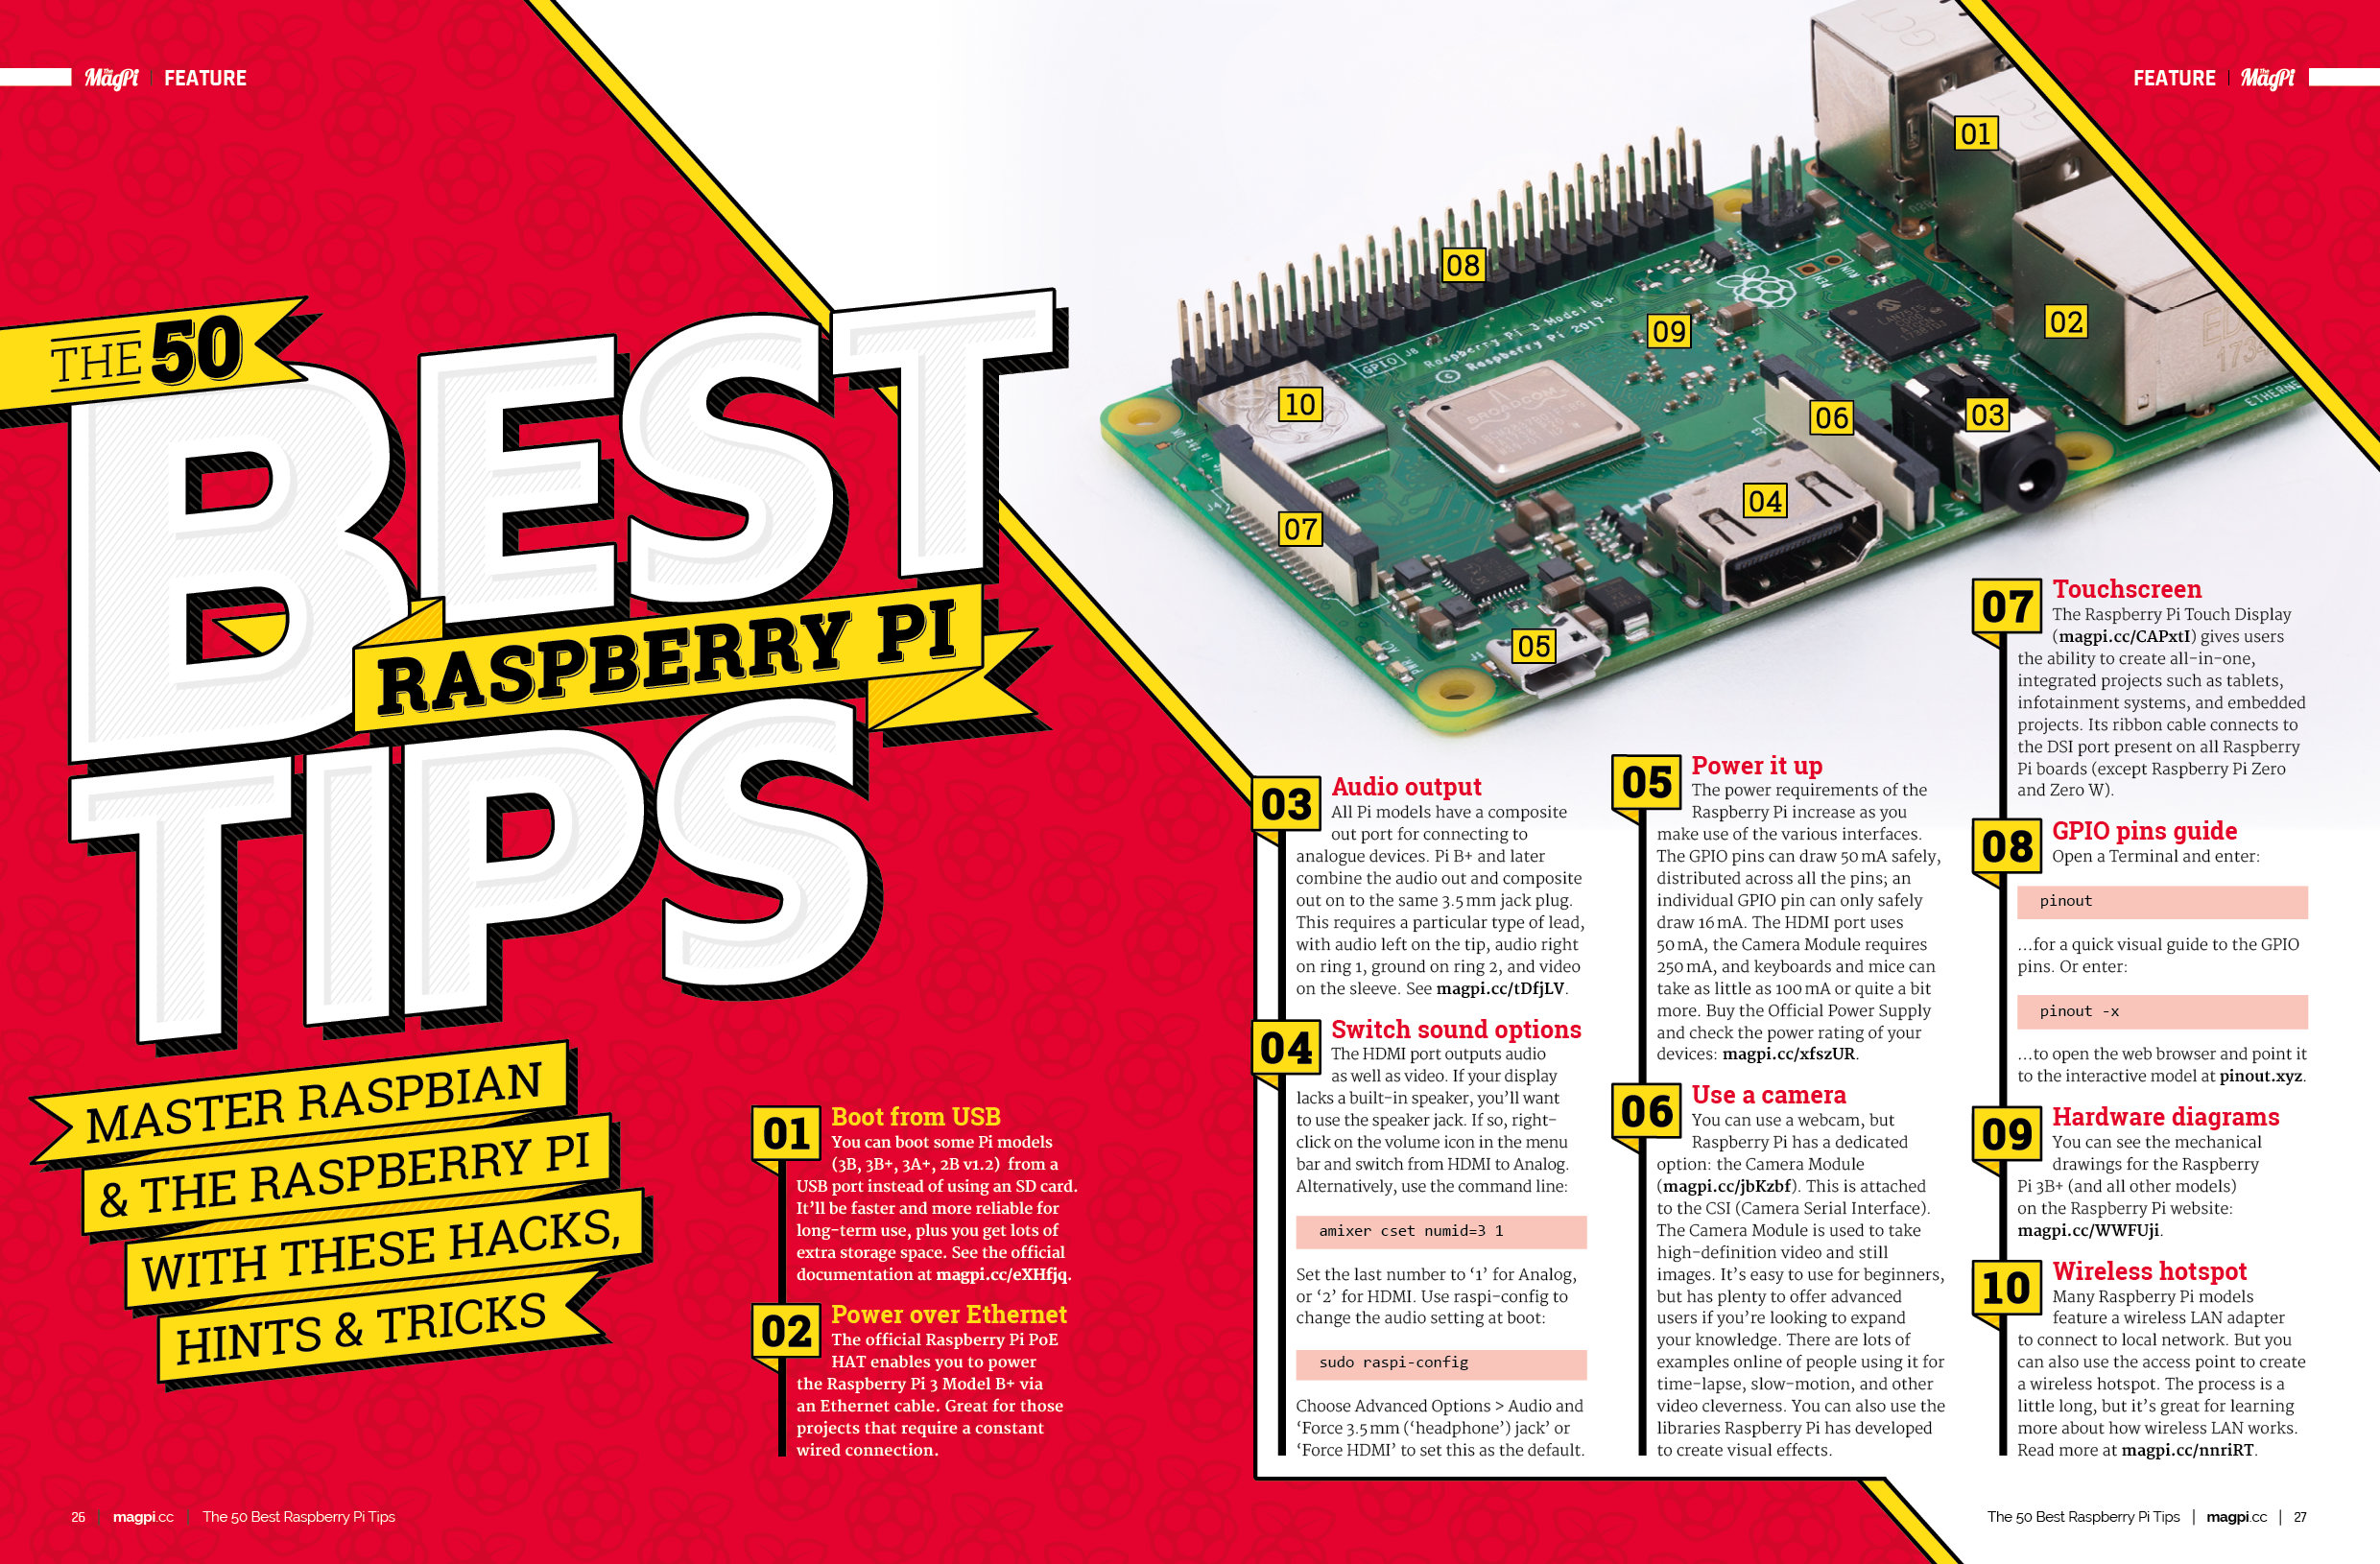 The 50 best Raspberry Pi tips